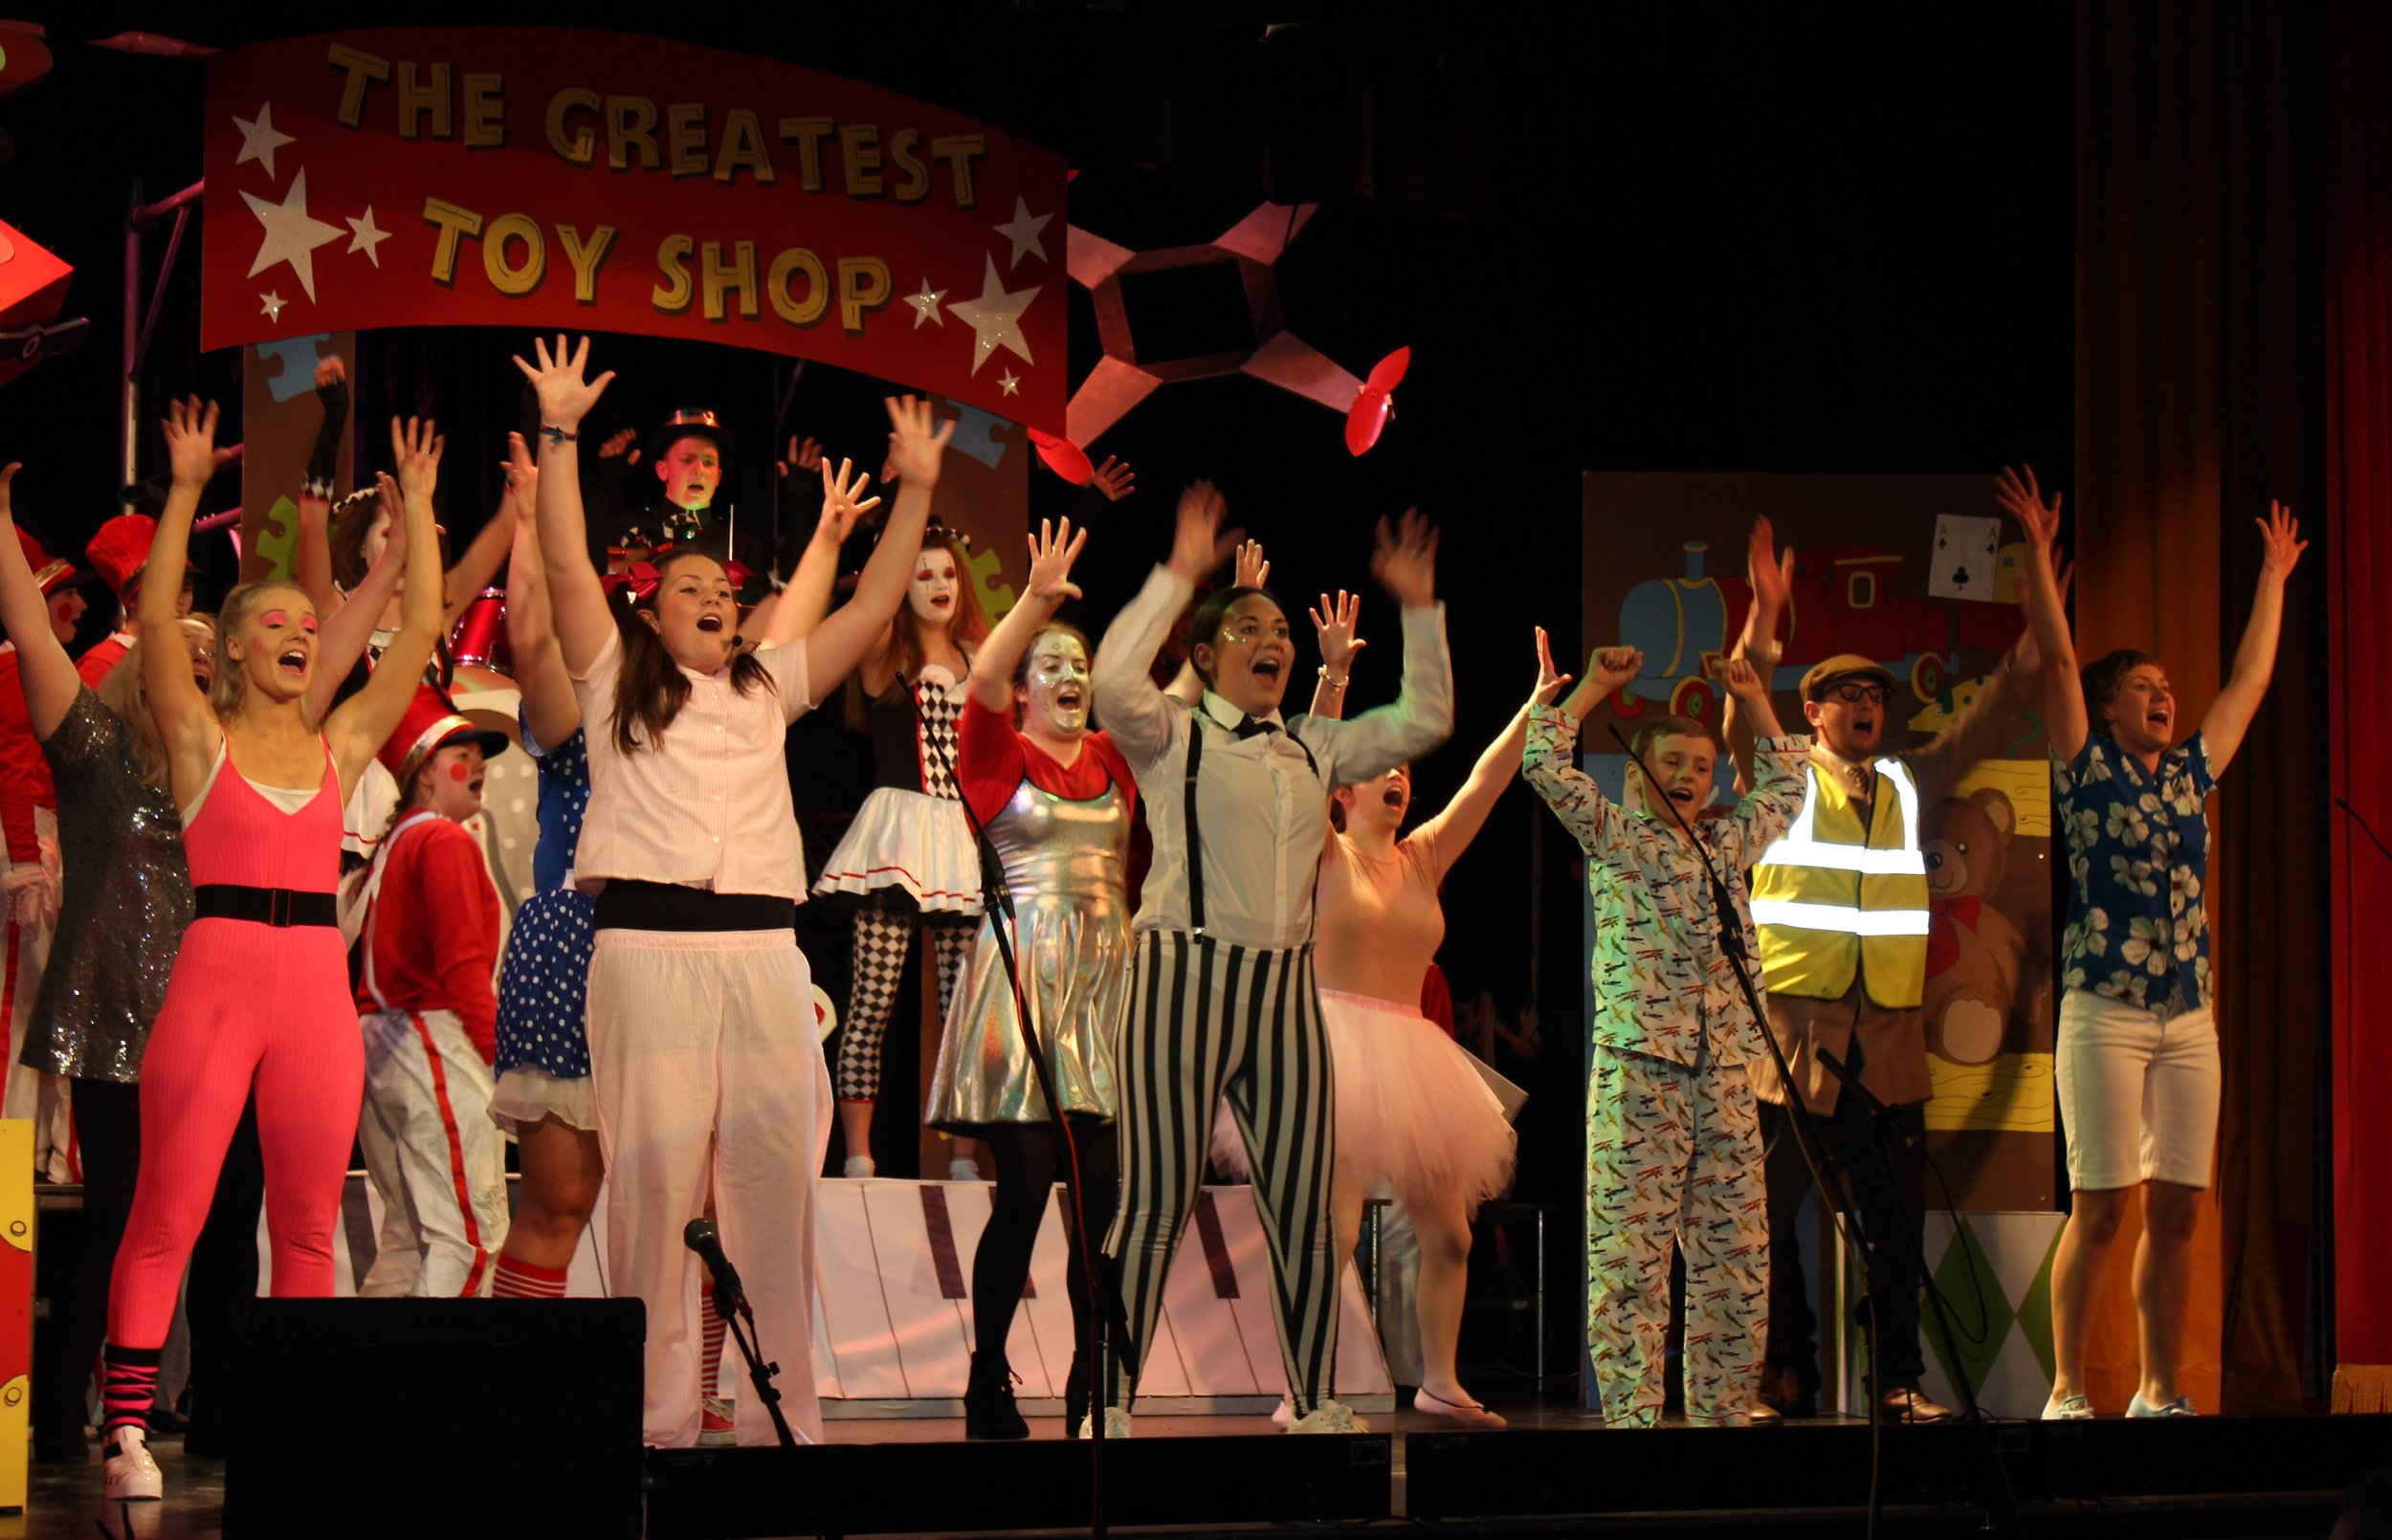 3rd Place - Rhayader YFC with their production 'The Greatest Toy Shop'.